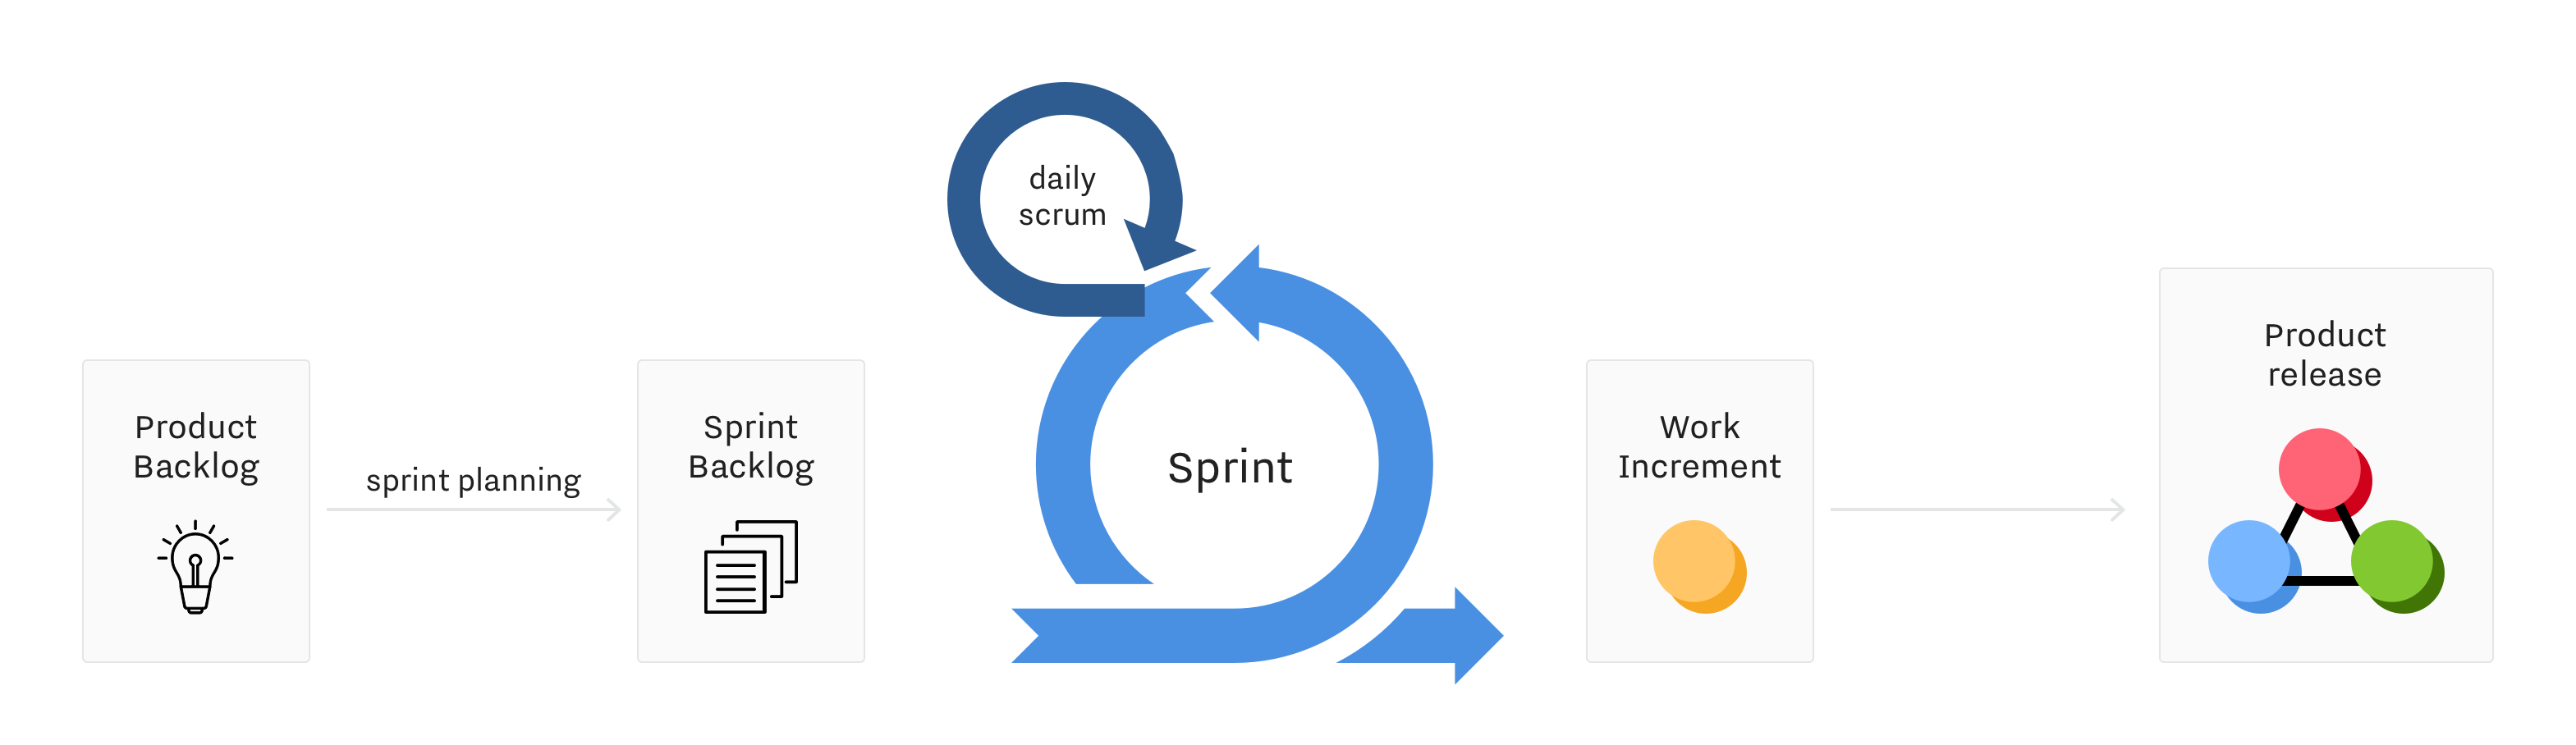 Agile Scrum Methodology